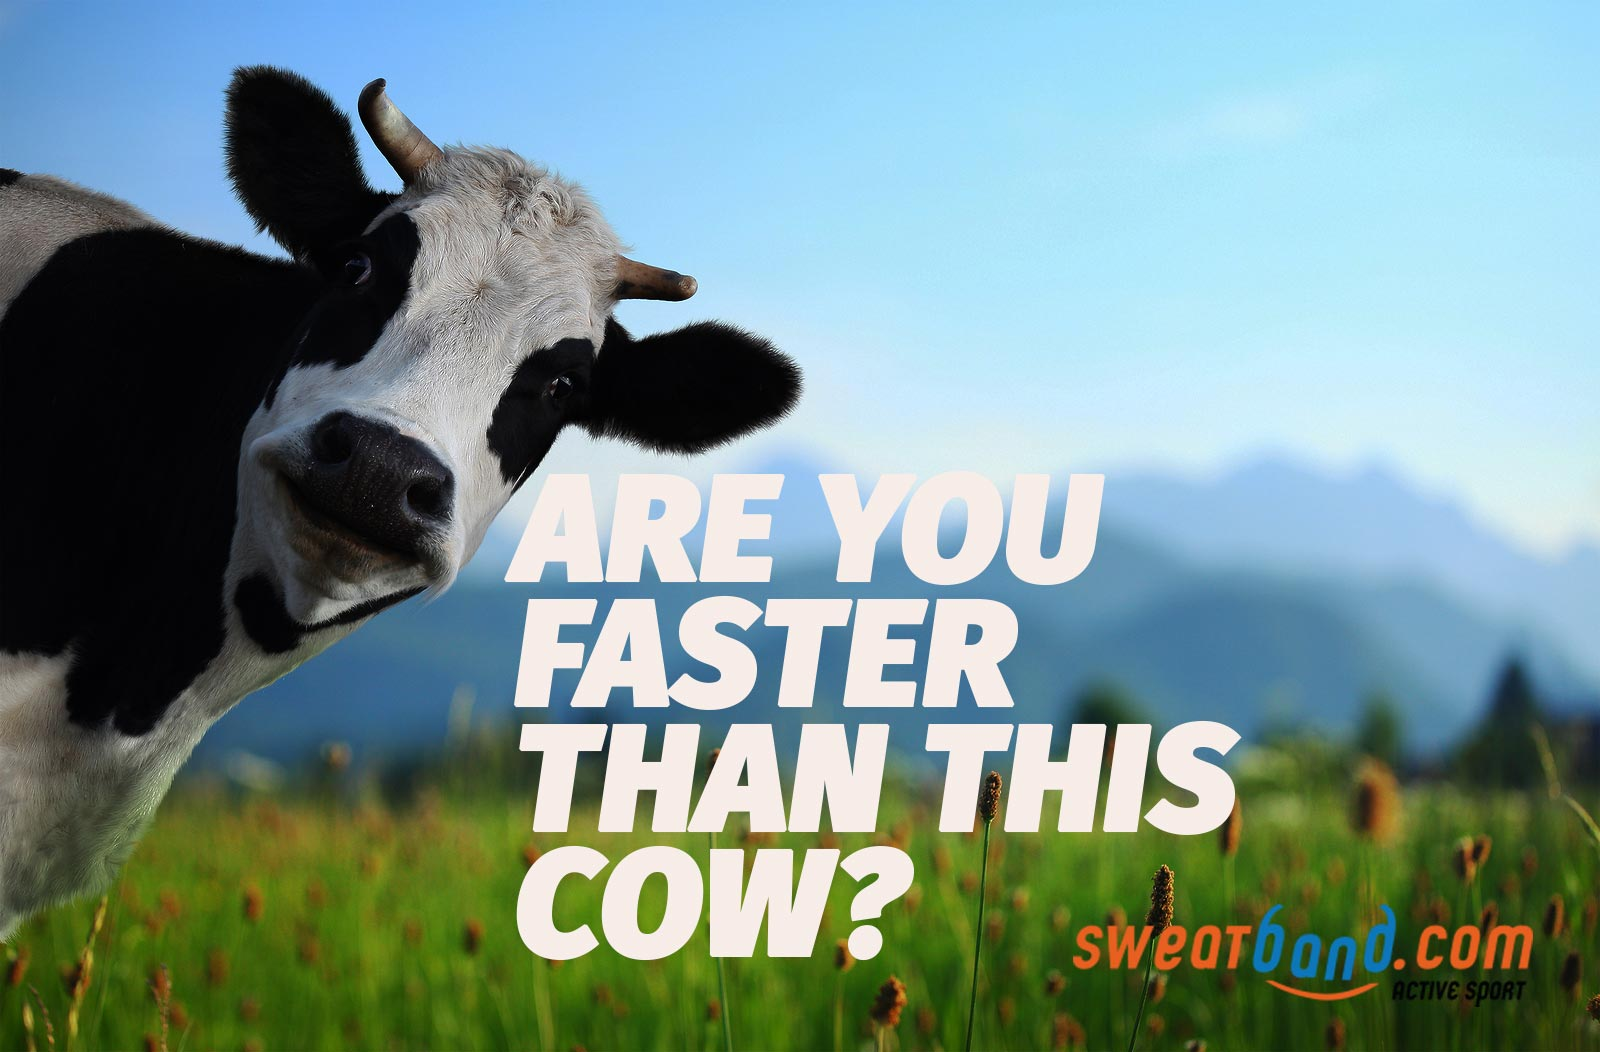 Can you run faster than a cow?